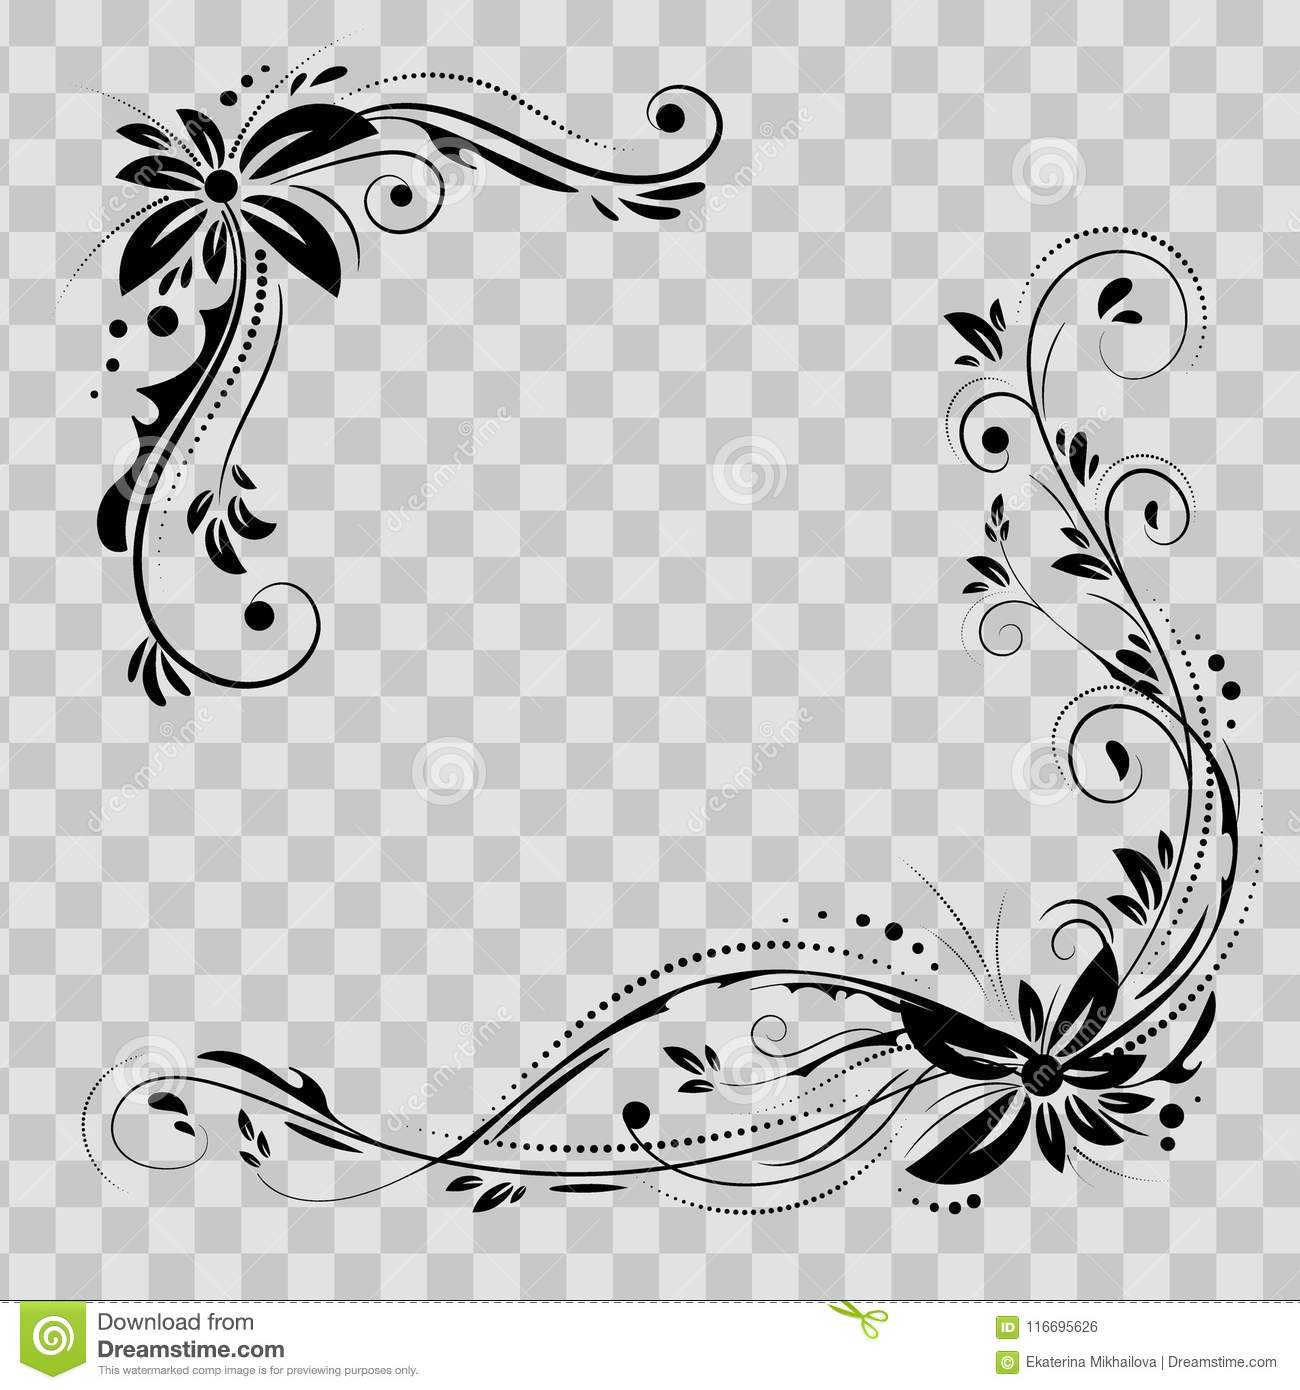 Floral corner design. Ornament black flowers on transparent background - vector stock. Decorative border with flowery